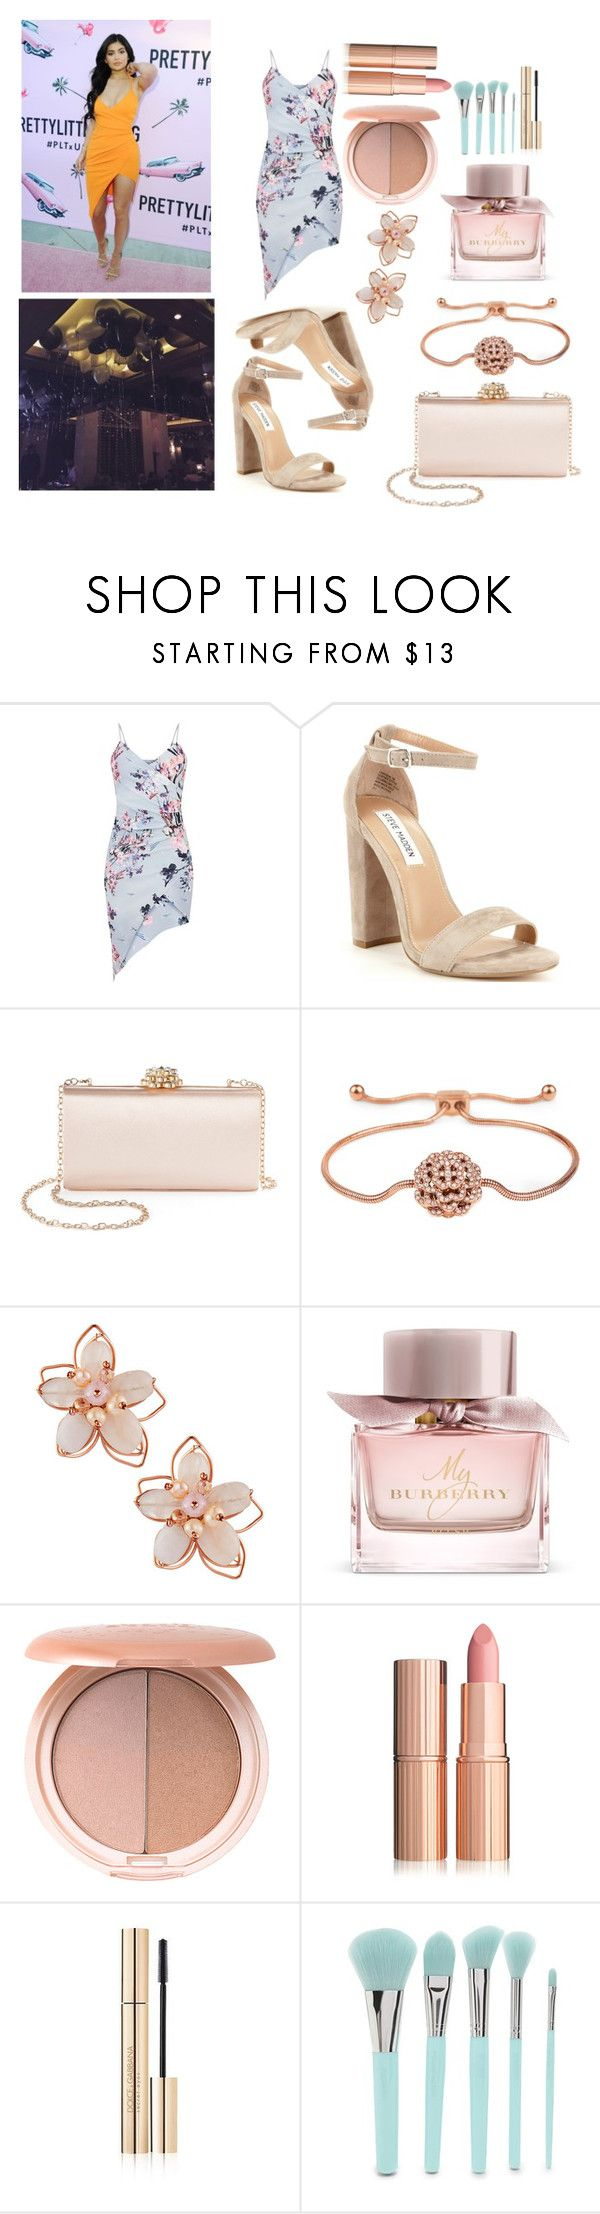 """""""LA: Arriving to the party w. Kylie Jenner"""" by selin-richie ❤ liked on Polyvore featuring Steve Madden, La Regale, Folli Follie, NAKAMOL, Burberry, Stila, Dolce&Gabbana and Forever 21"""